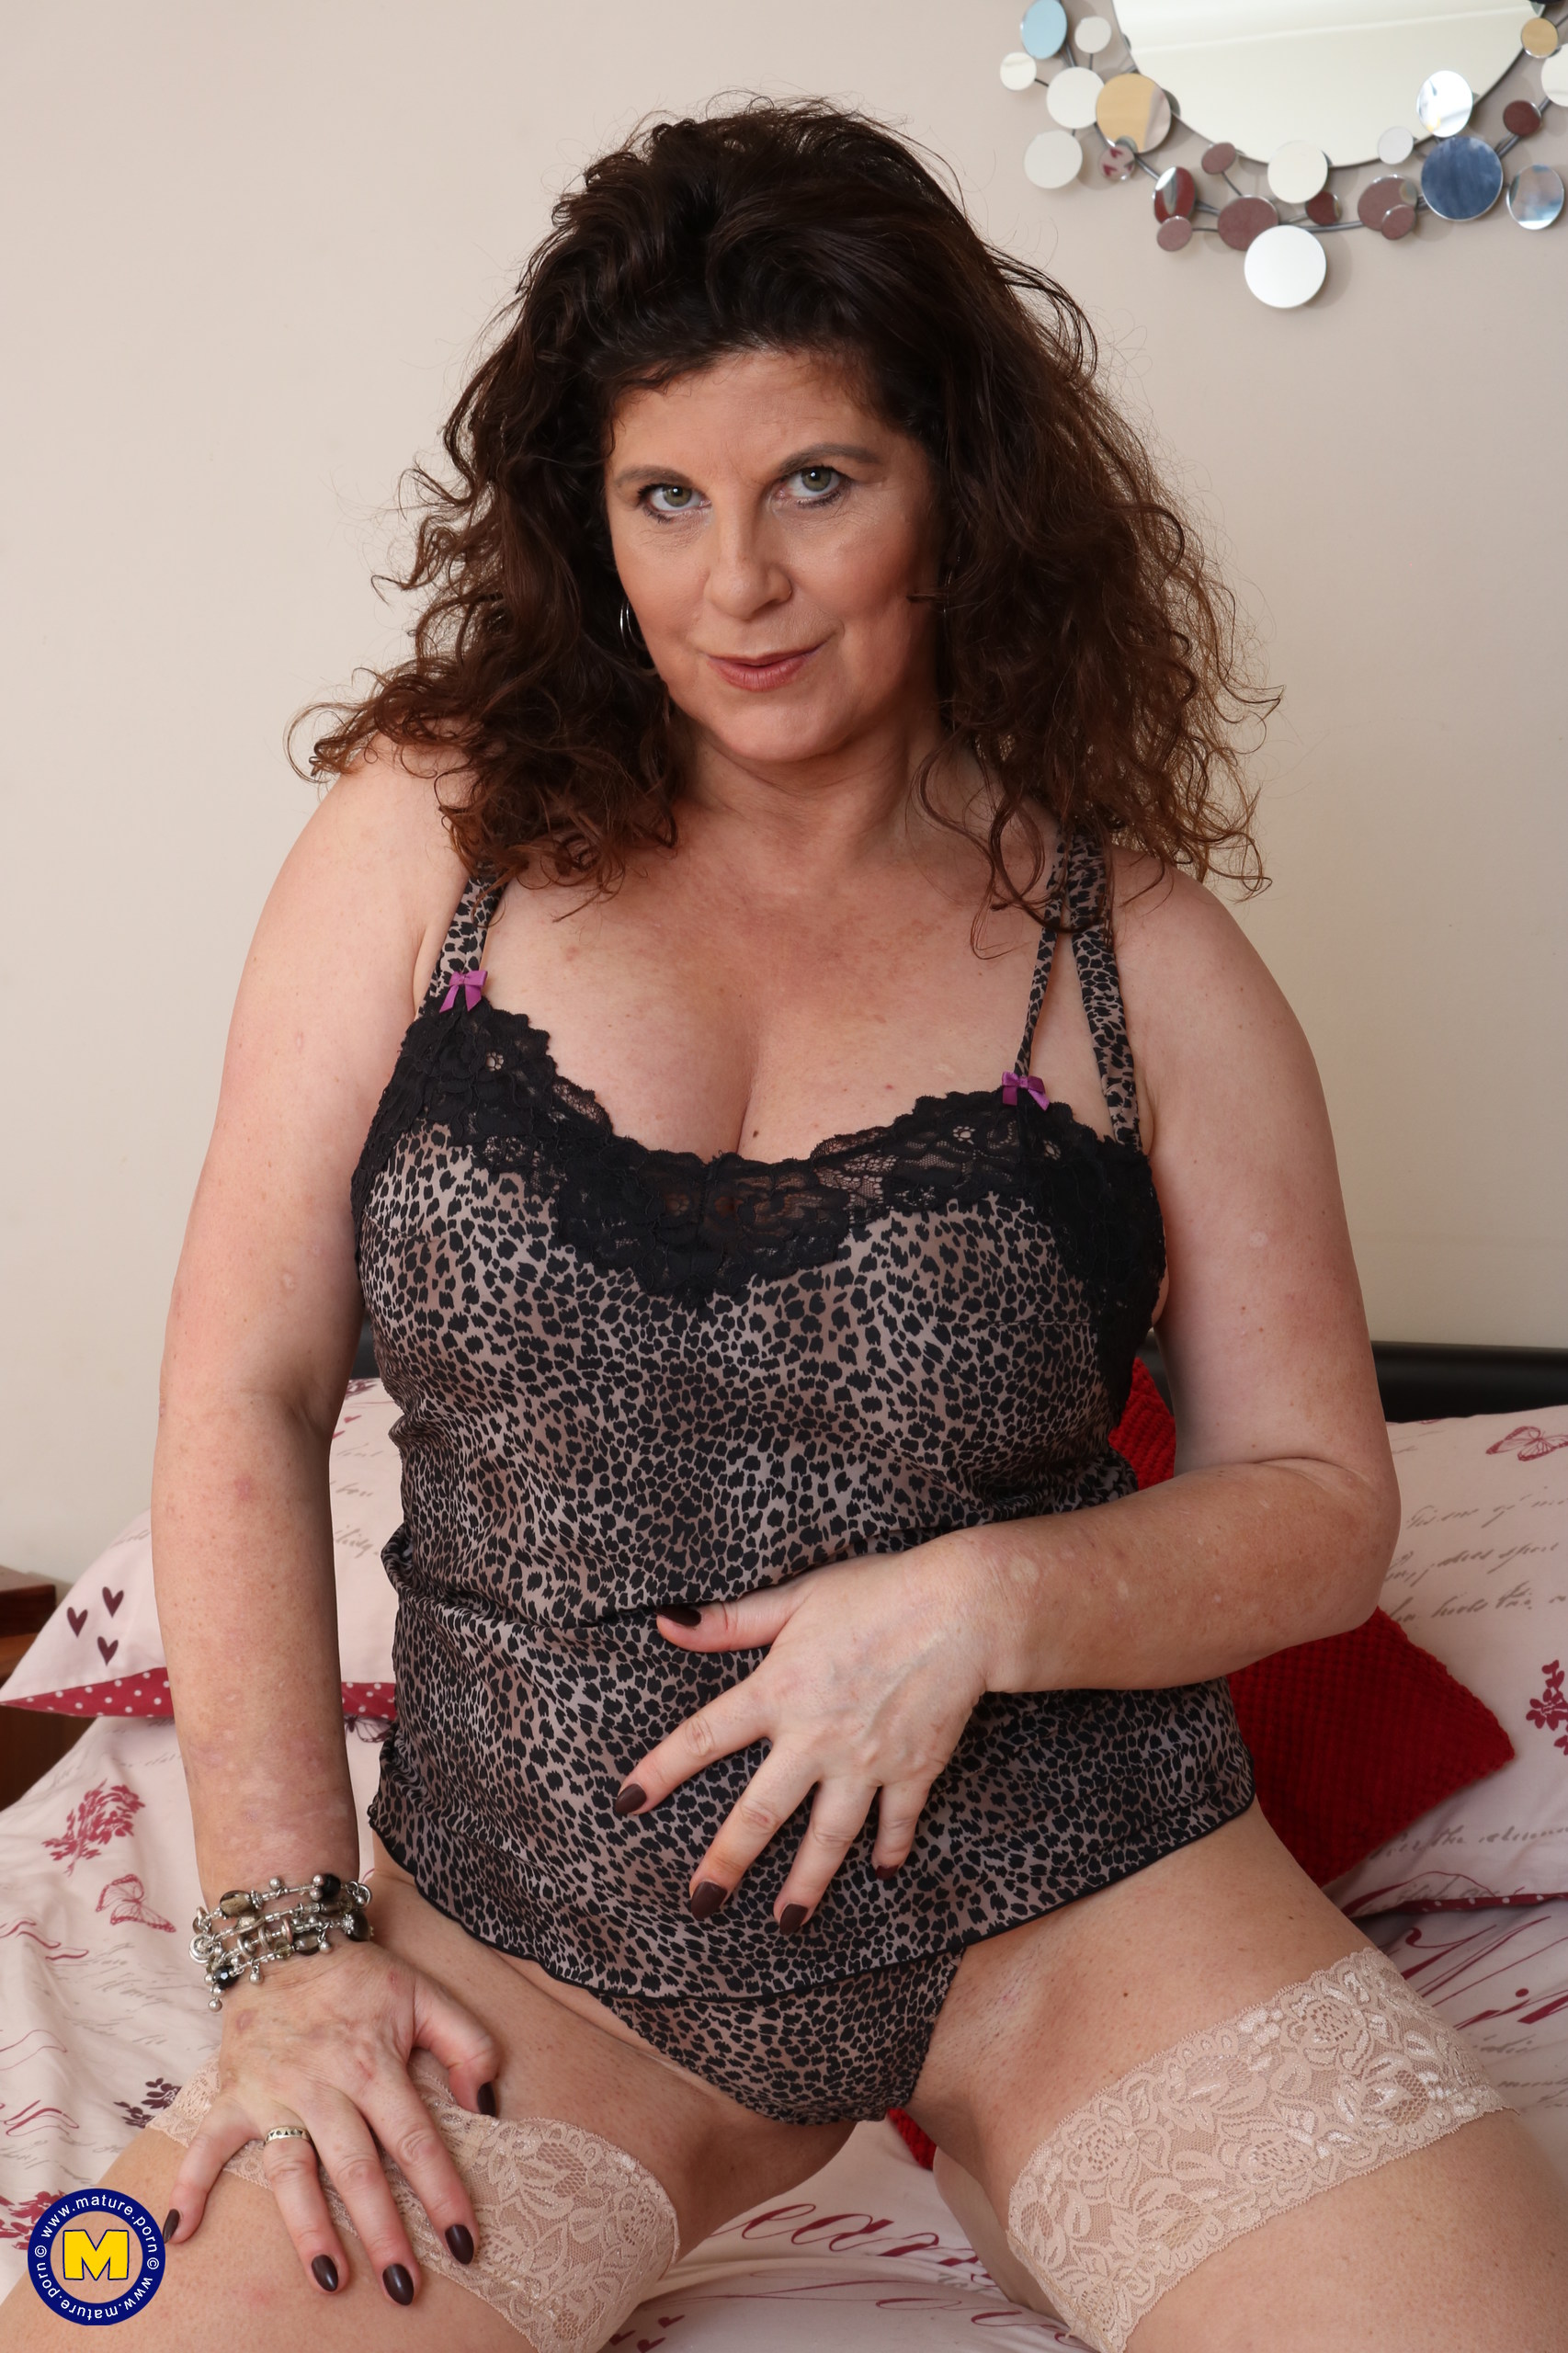 Wild Brit housewife toying with her honeypot